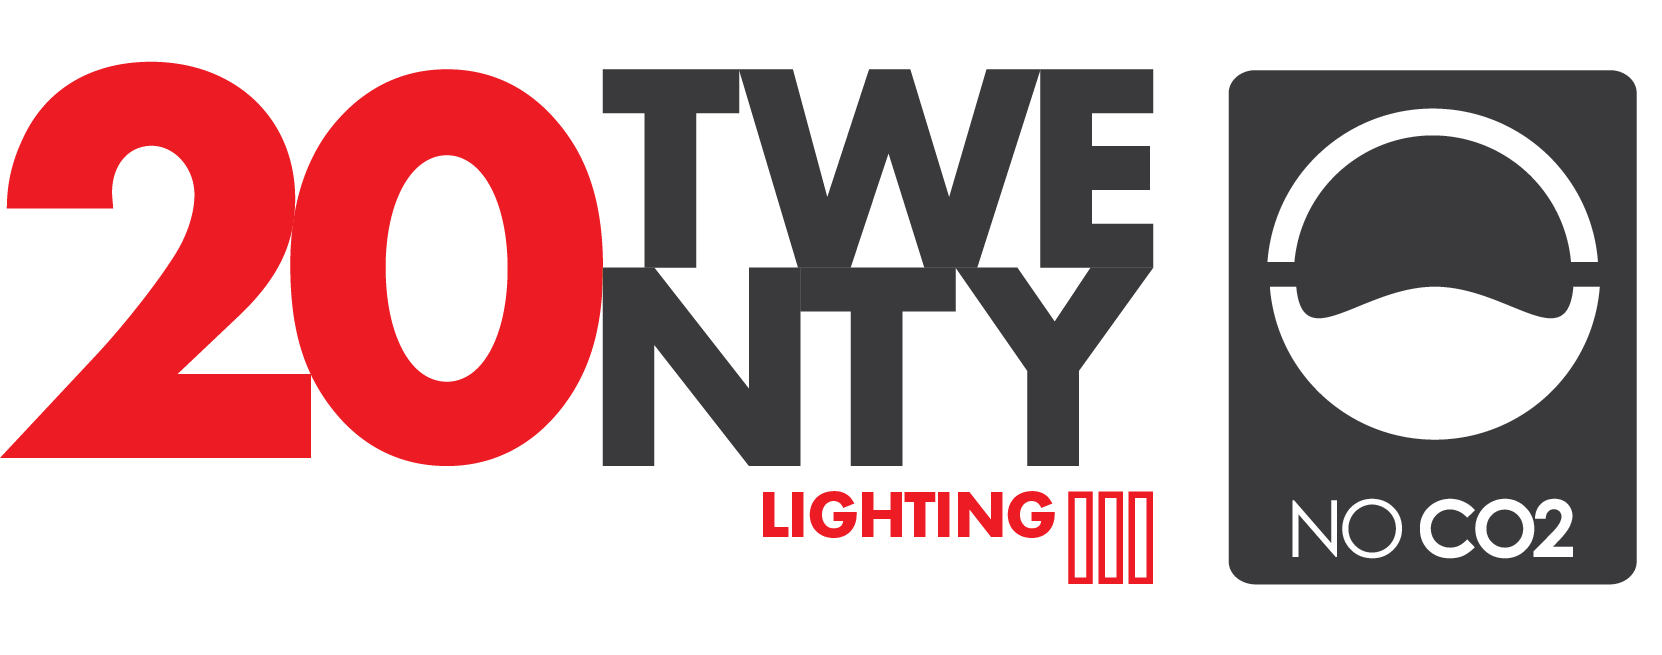 20Twenty lighting certified by noco2